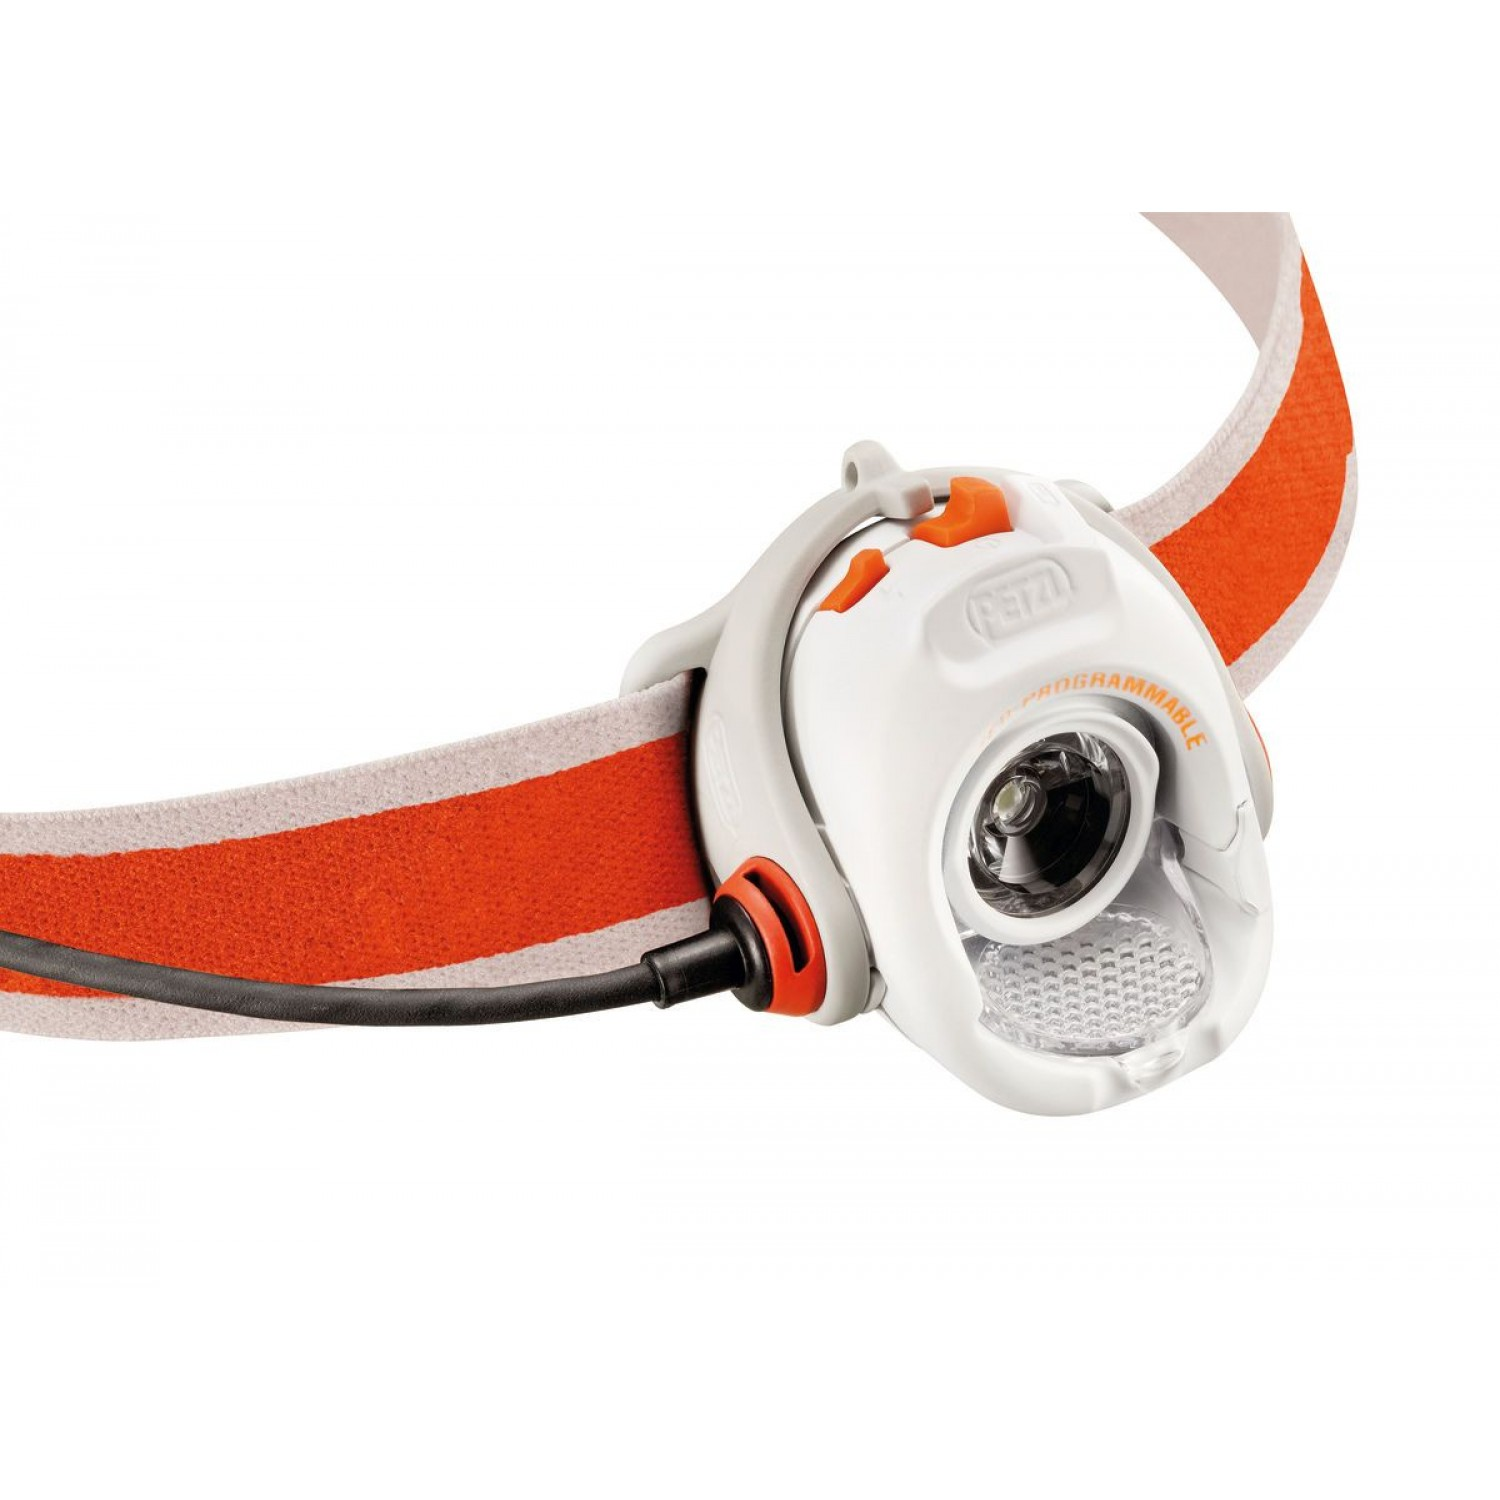 Petzl Myo orange, creme